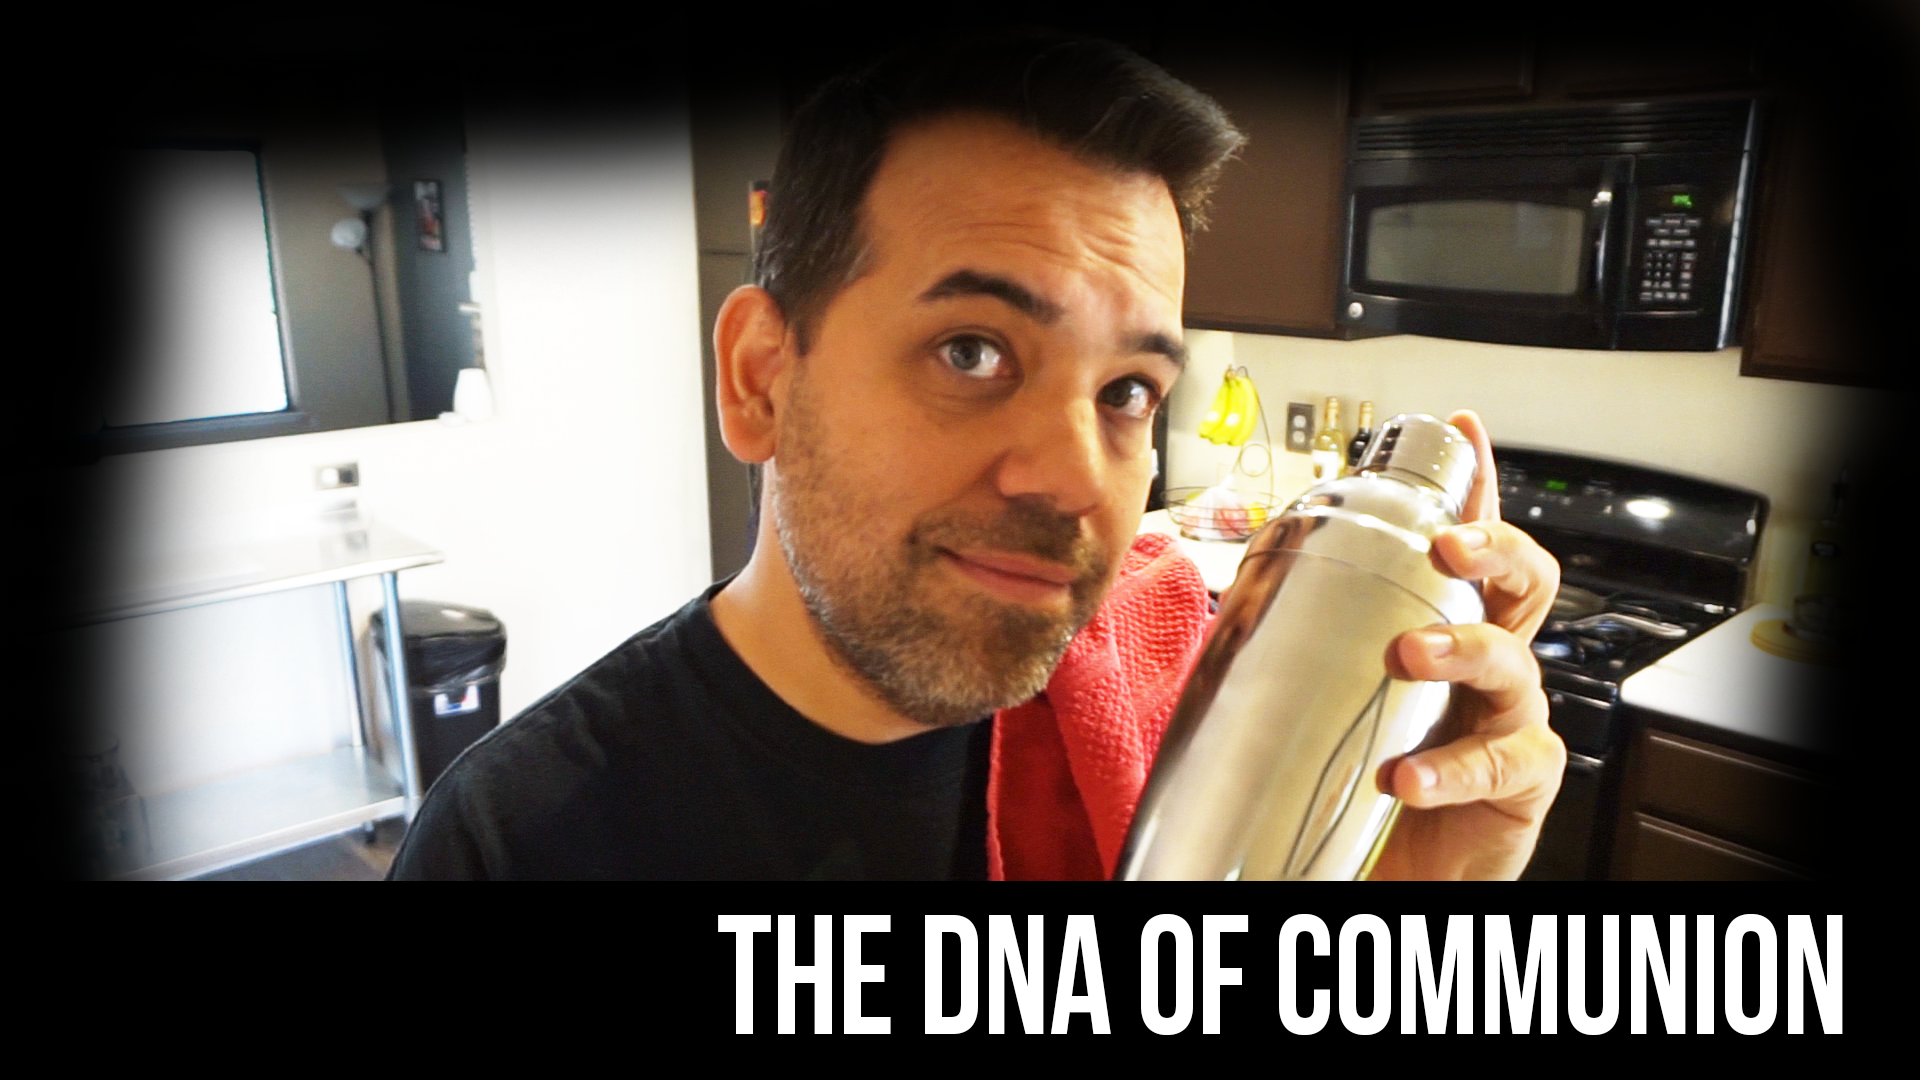 The DNA of Communion